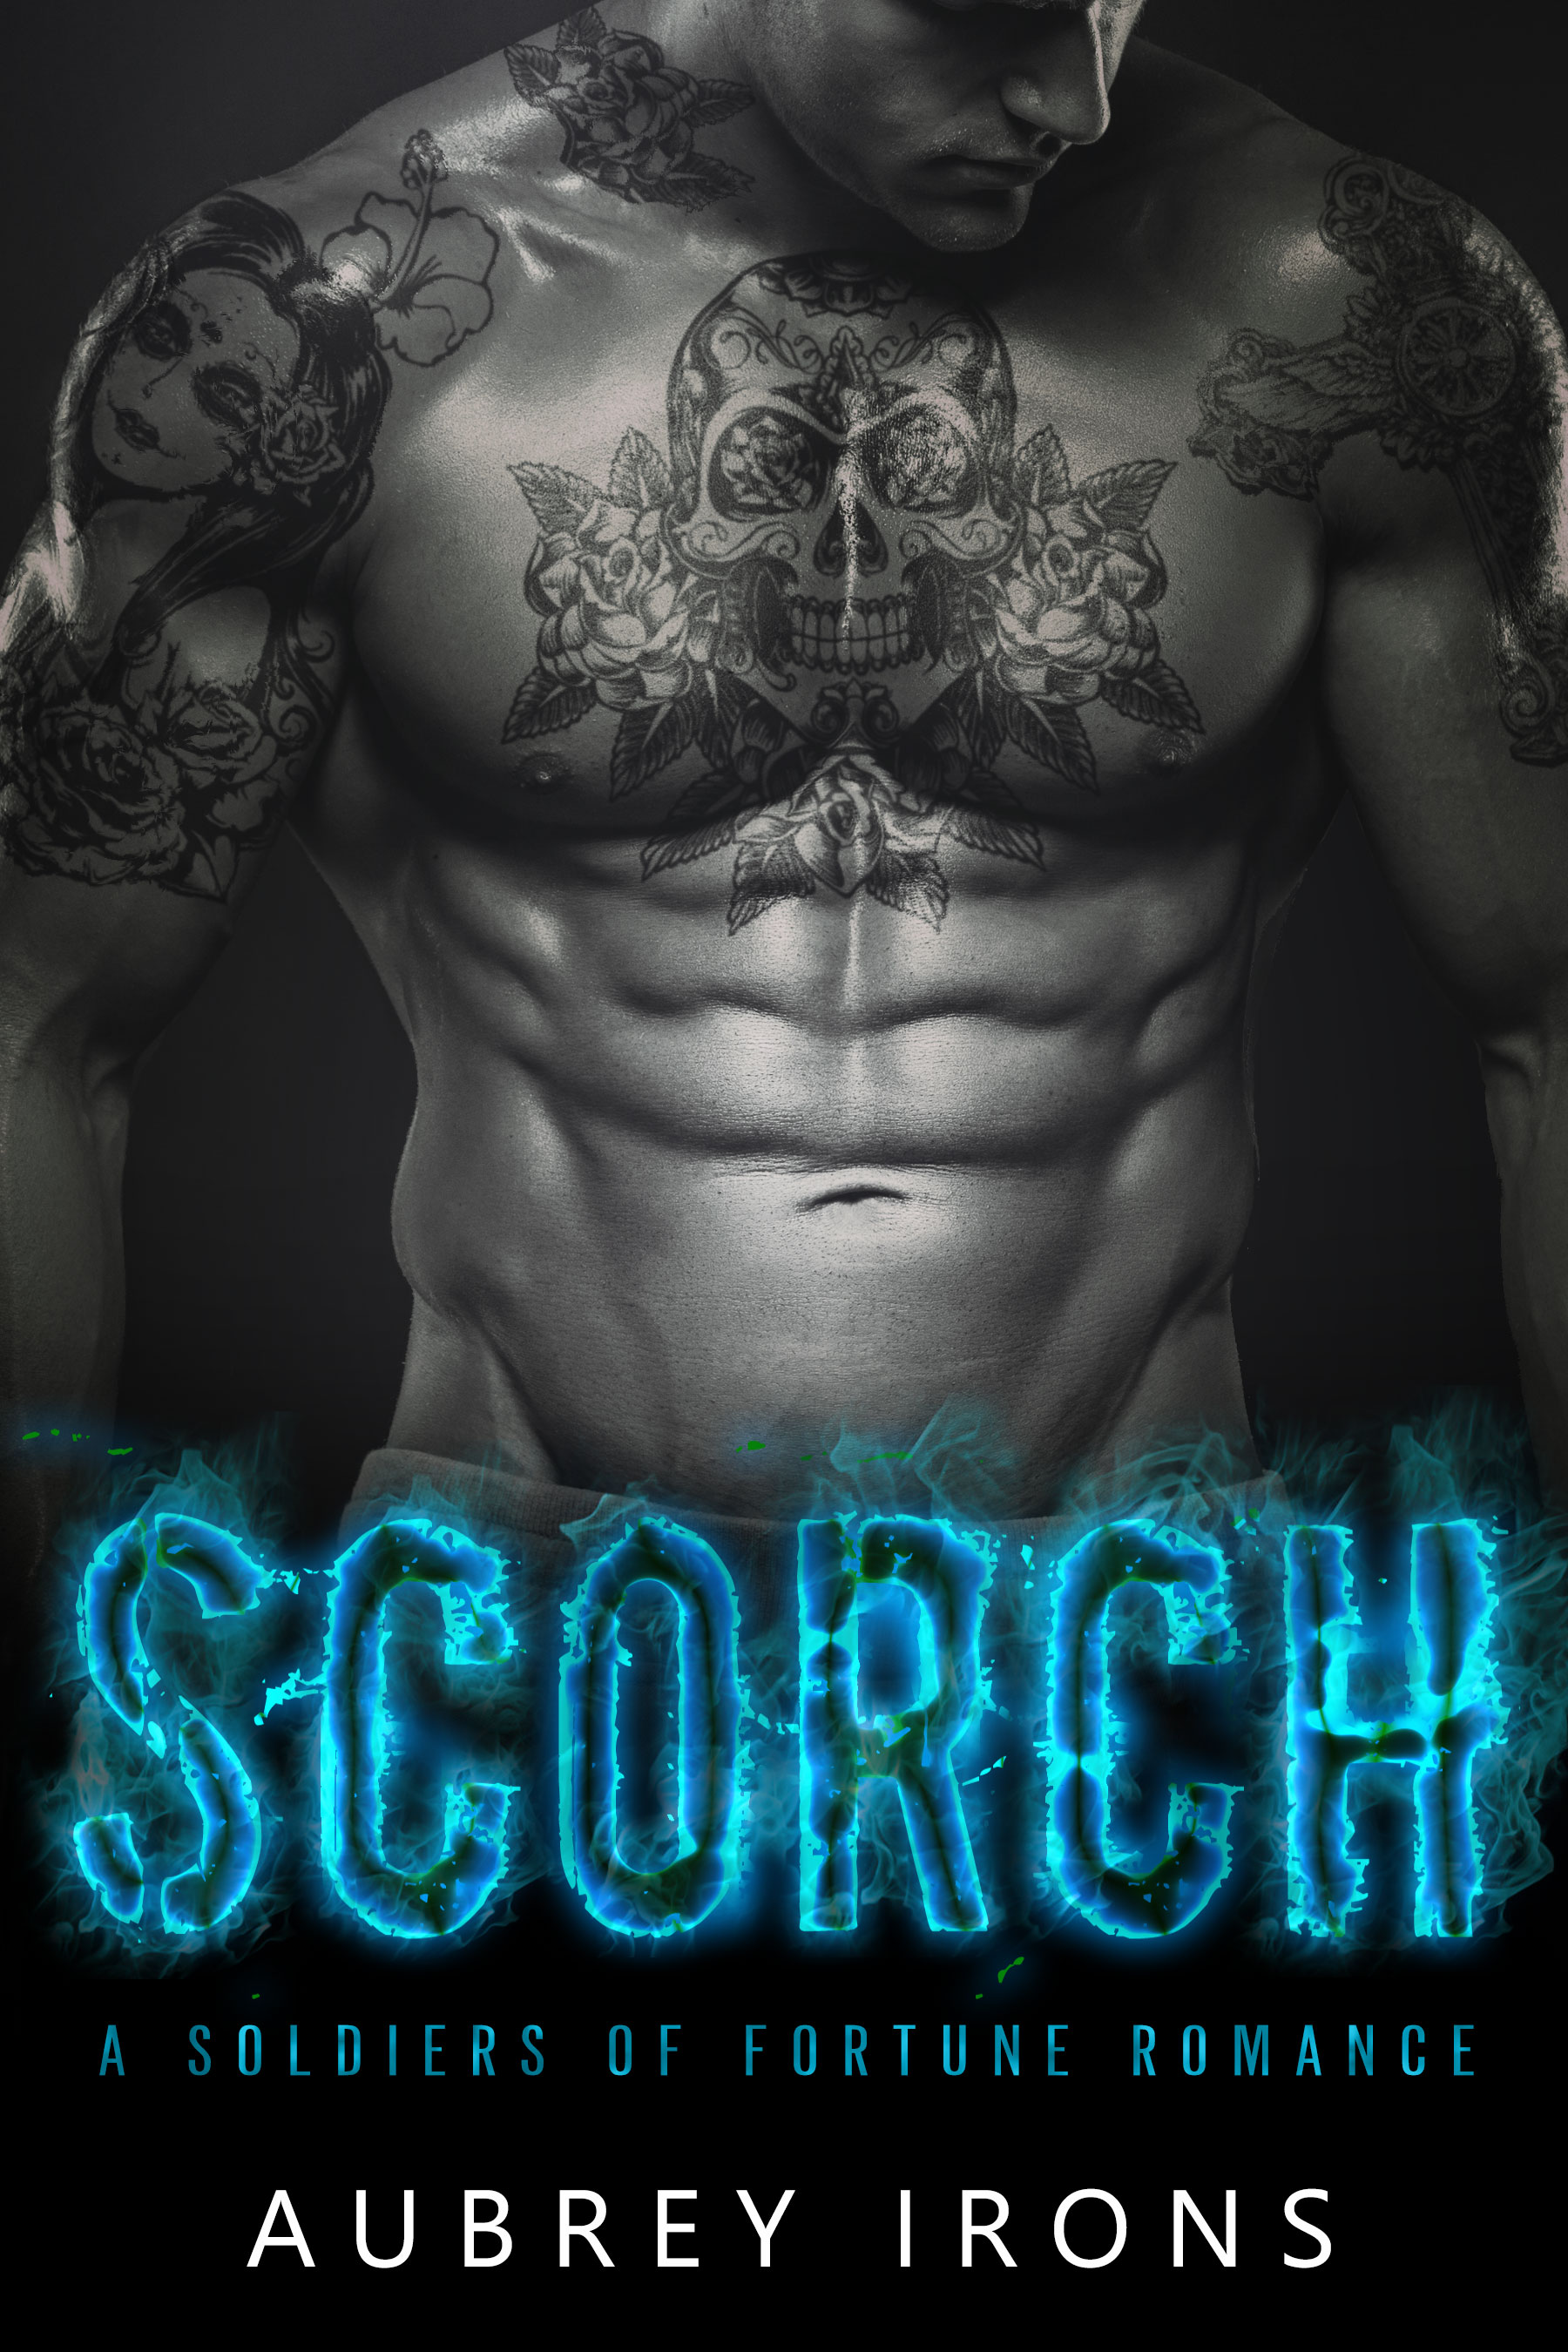 Scorch---New-Cover.jpg